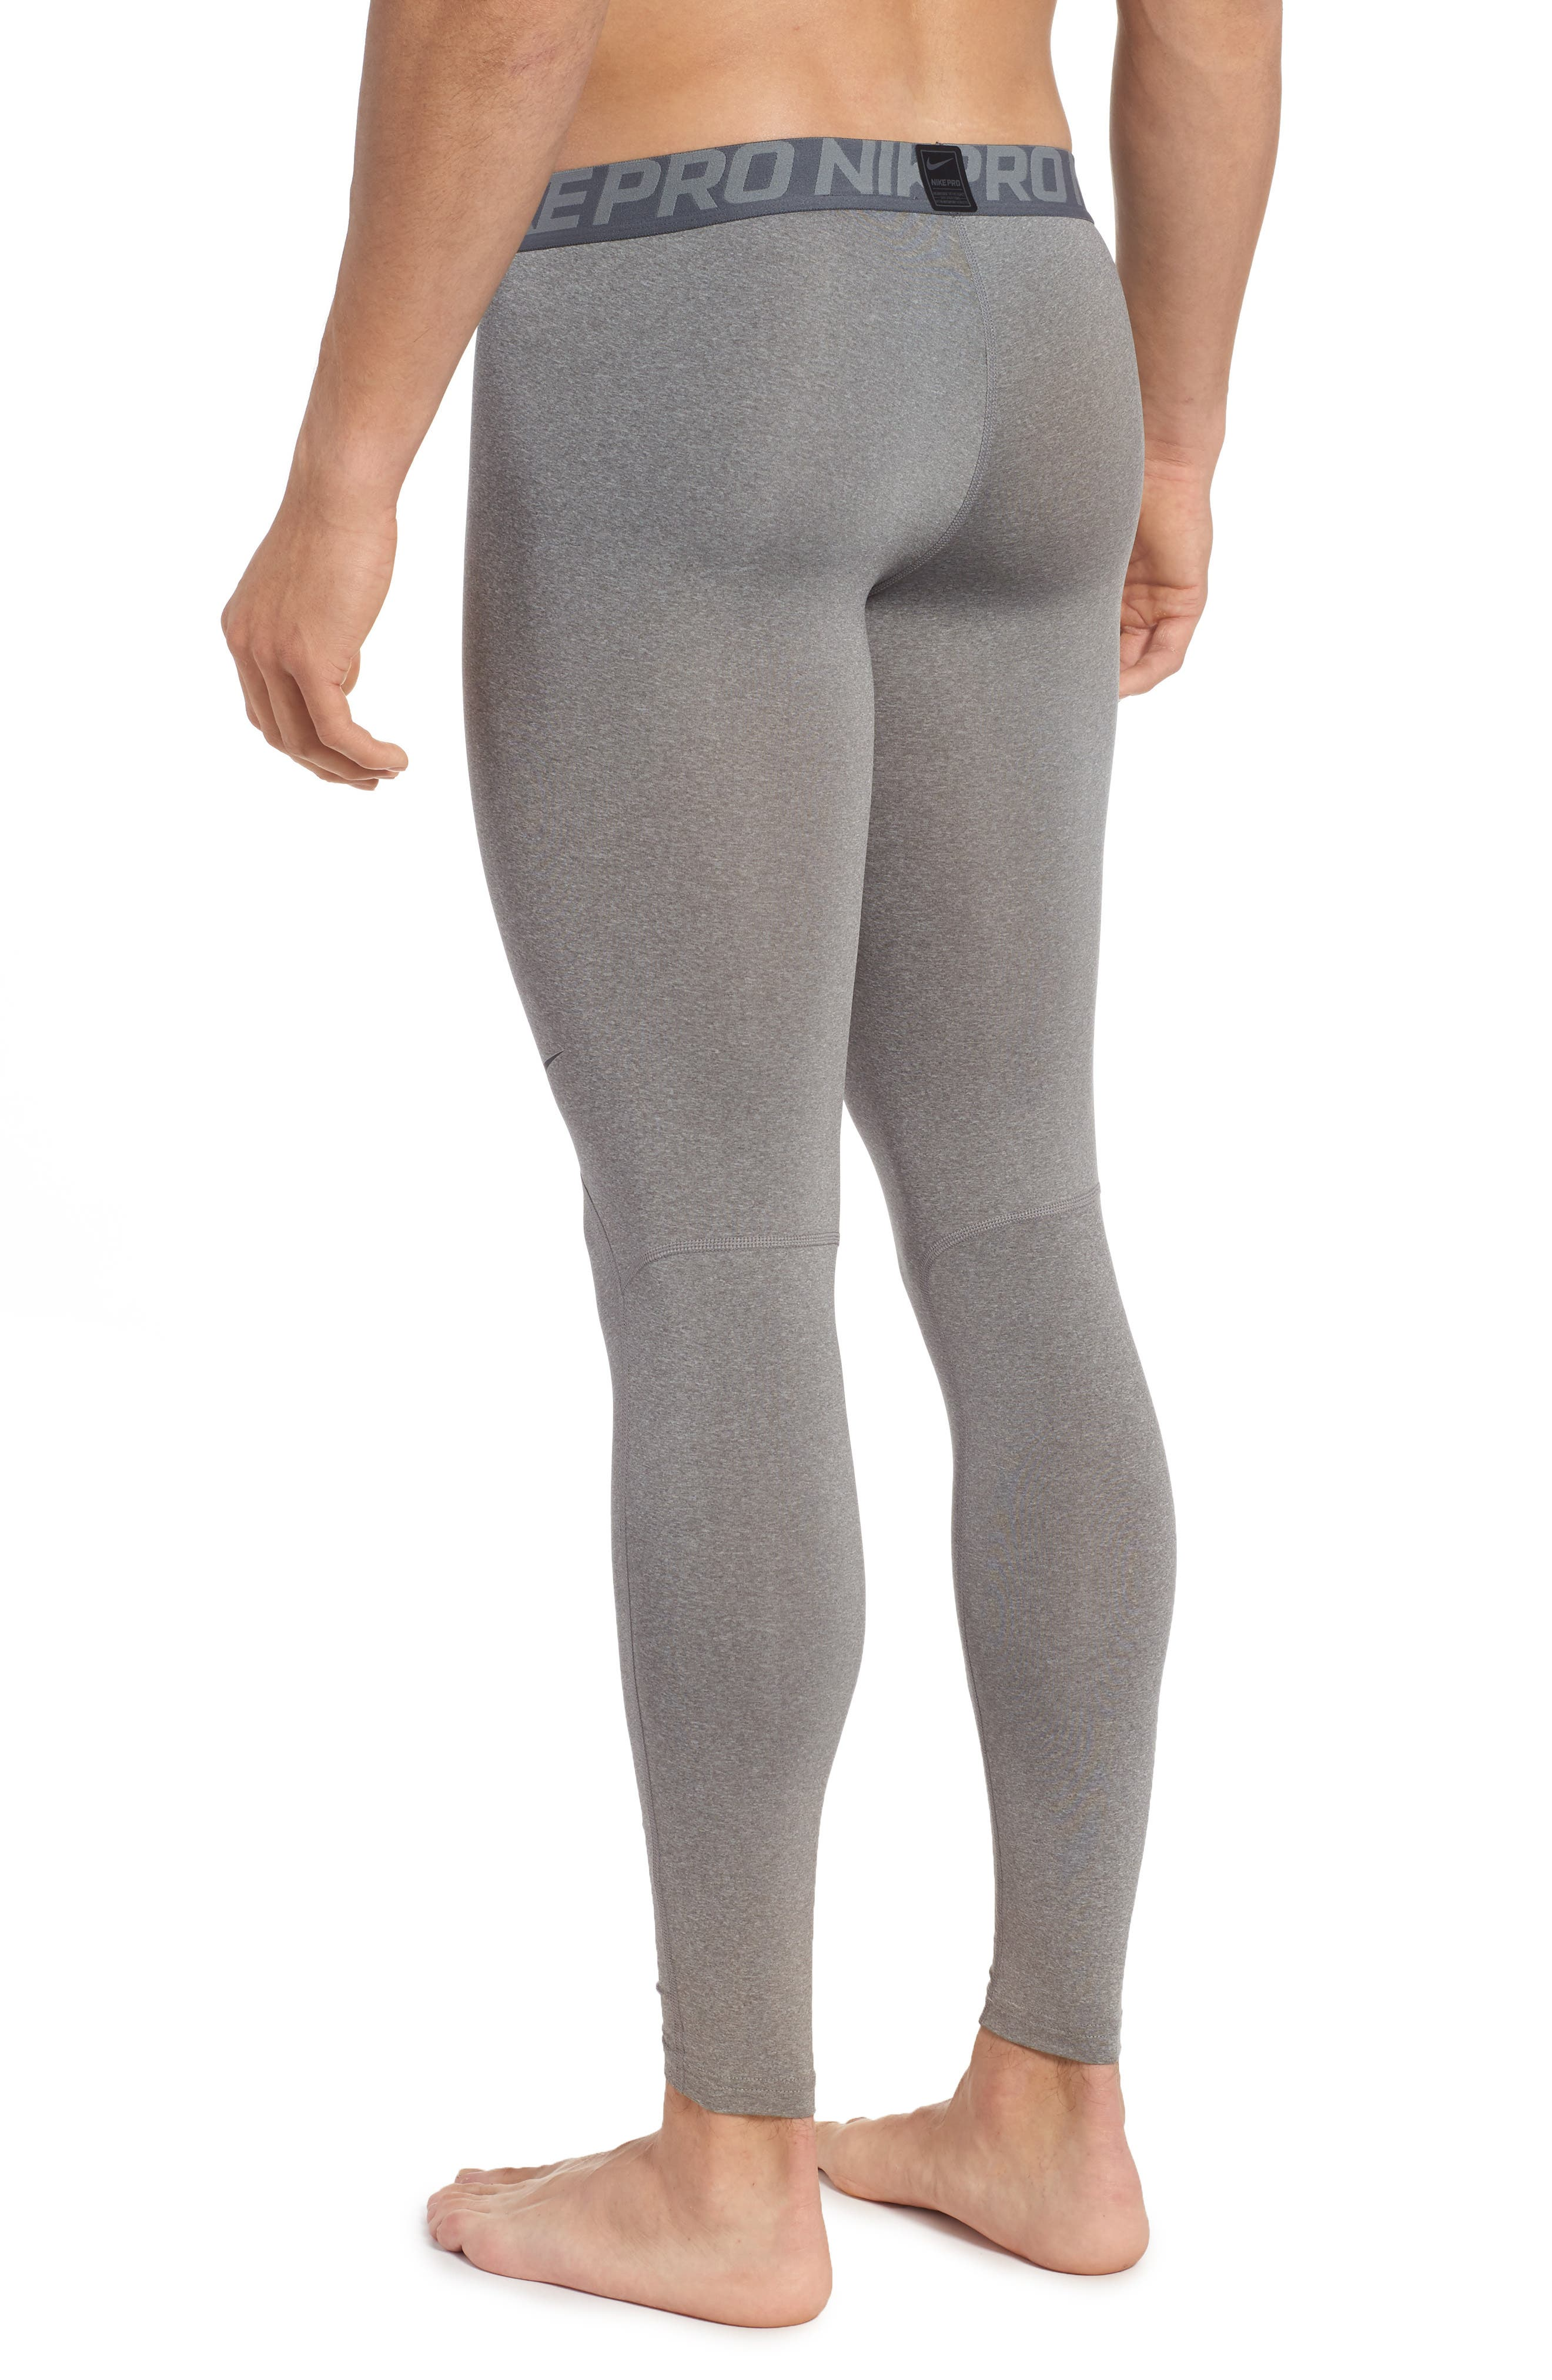 Pro Athletic Tights,                             Alternate thumbnail 2, color,                             CARBON HEATHER/ GREY/ BLACK